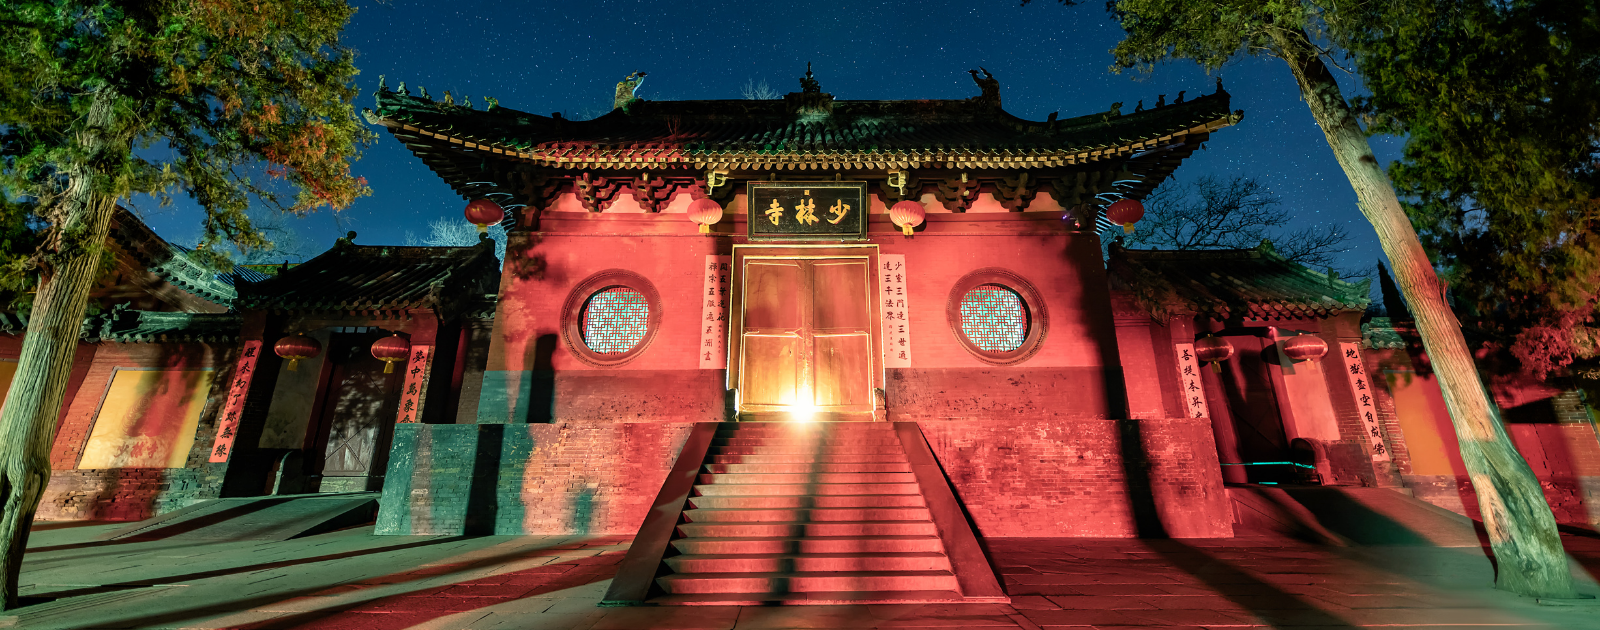 chi gong temple